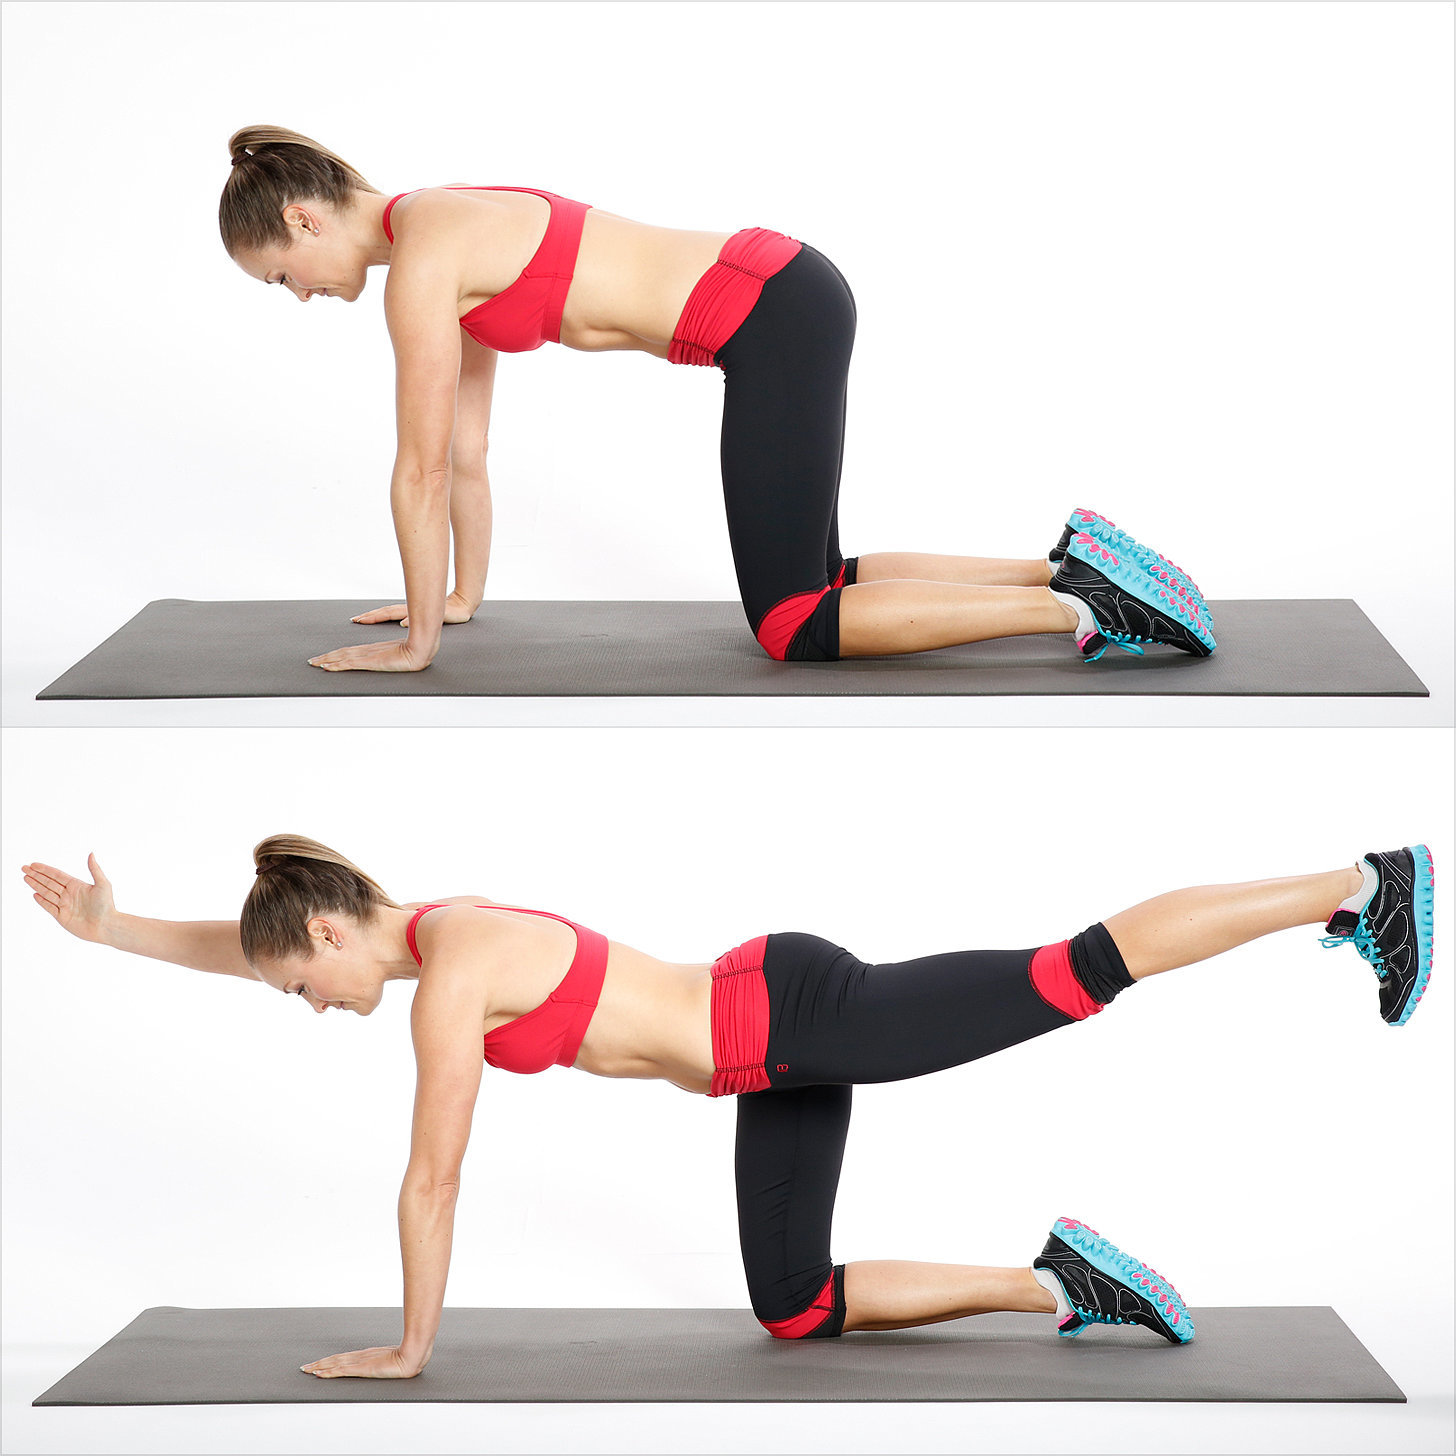 How to do bird dog exercise for your back popsugar fitness for 1 2 3 4 all the ladies on the floor